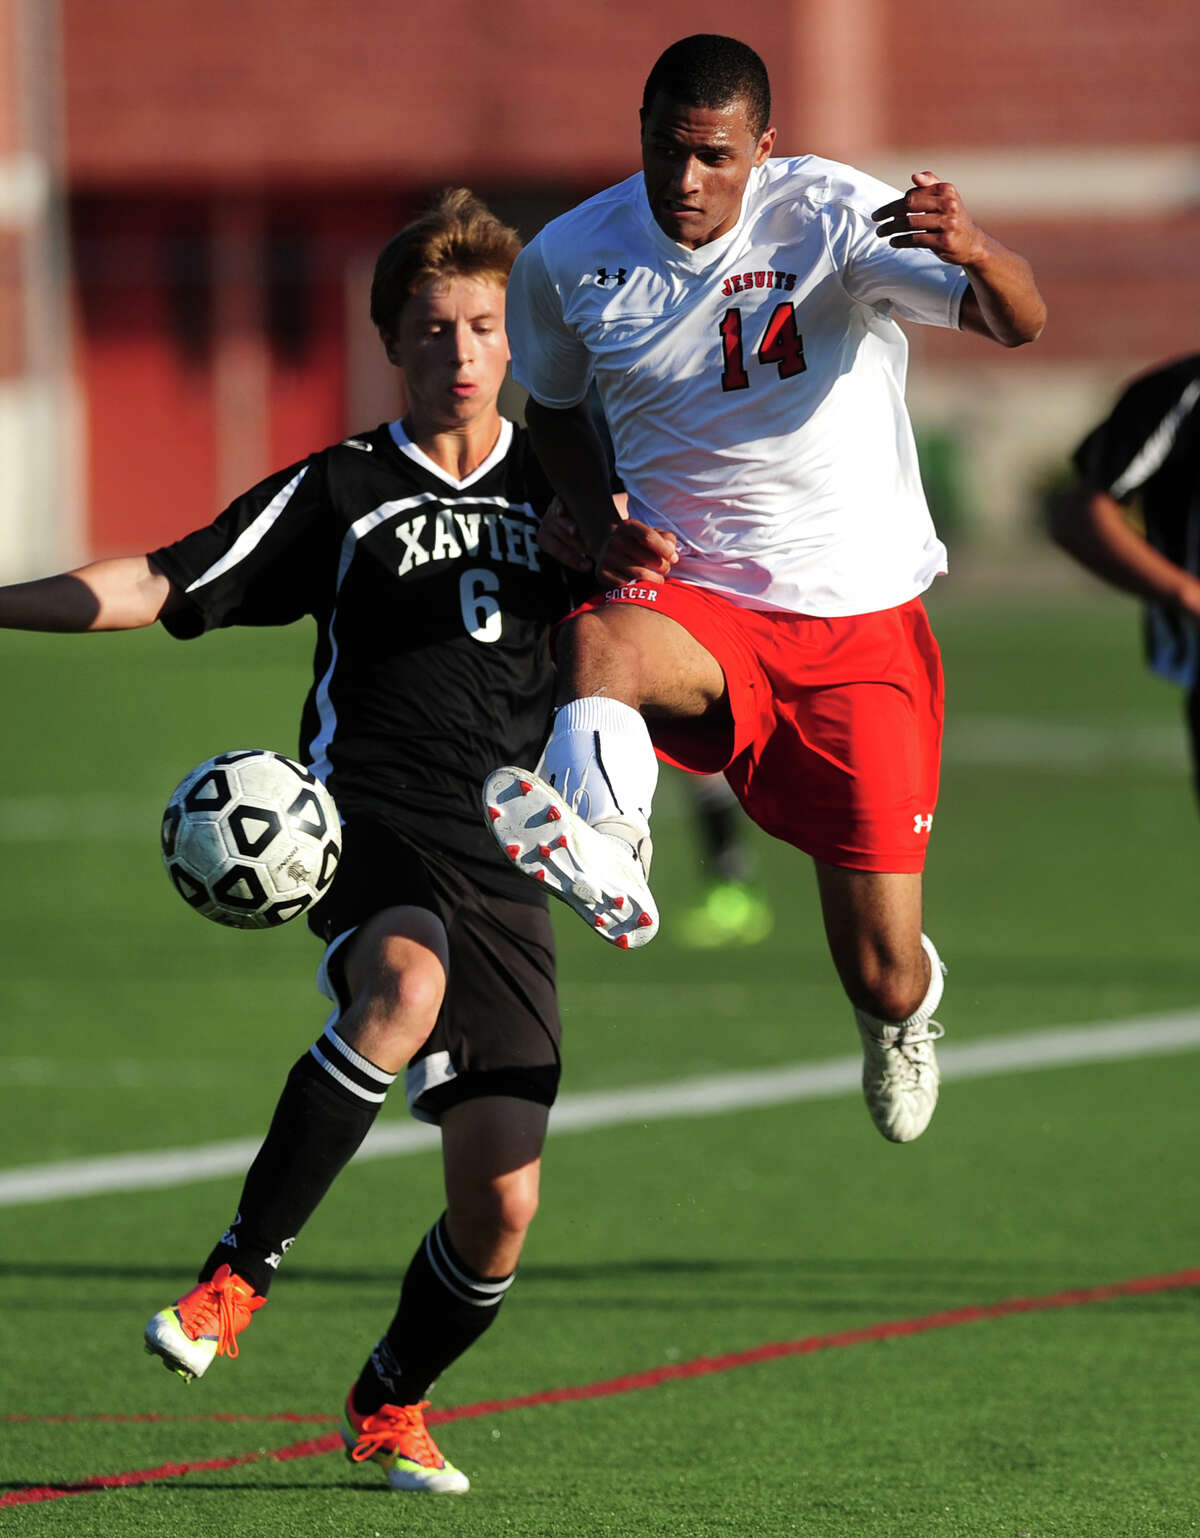 Fairfield Prep's Matt Crowe leaps in front of Xavier's Jason Hoops to intercept the ball, during boys high school soccer action in Fairfield, Conn. on Tuesday October 1, 2013.